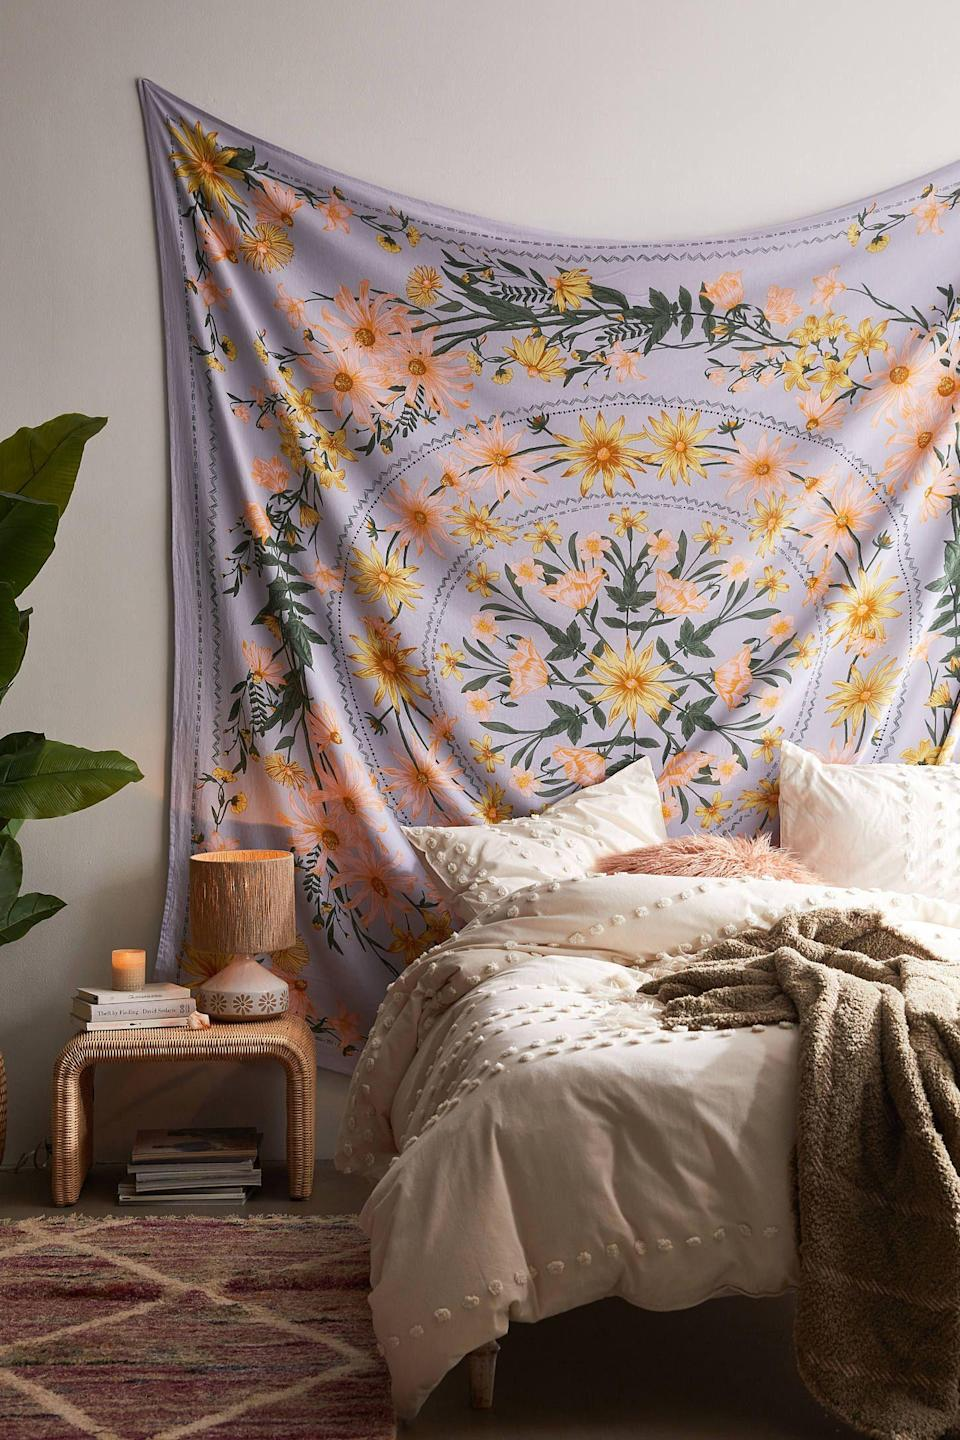 """<p><strong>Urban Outfitters</strong></p><p>urbanoutfitters.com</p><p><strong>$49.00</strong></p><p><a href=""""https://go.redirectingat.com?id=74968X1596630&url=https%3A%2F%2Fwww.urbanoutfitters.com%2Fshop%2Fclara-floral-tapestry&sref=https%3A%2F%2Fwww.cosmopolitan.com%2Flifestyle%2Fg31699444%2Fgemini-gift-guide%2F"""" rel=""""nofollow noopener"""" target=""""_blank"""" data-ylk=""""slk:Shop Now"""" class=""""link rapid-noclick-resp"""">Shop Now</a></p><p>Geminis love to sprinkle a bit of their unique identity into every piece of living space they can, and we are one hundred percent here for it. A brightly colored patterned tapestry will definitely add Gemini's outgoing personality to any room.</p>"""